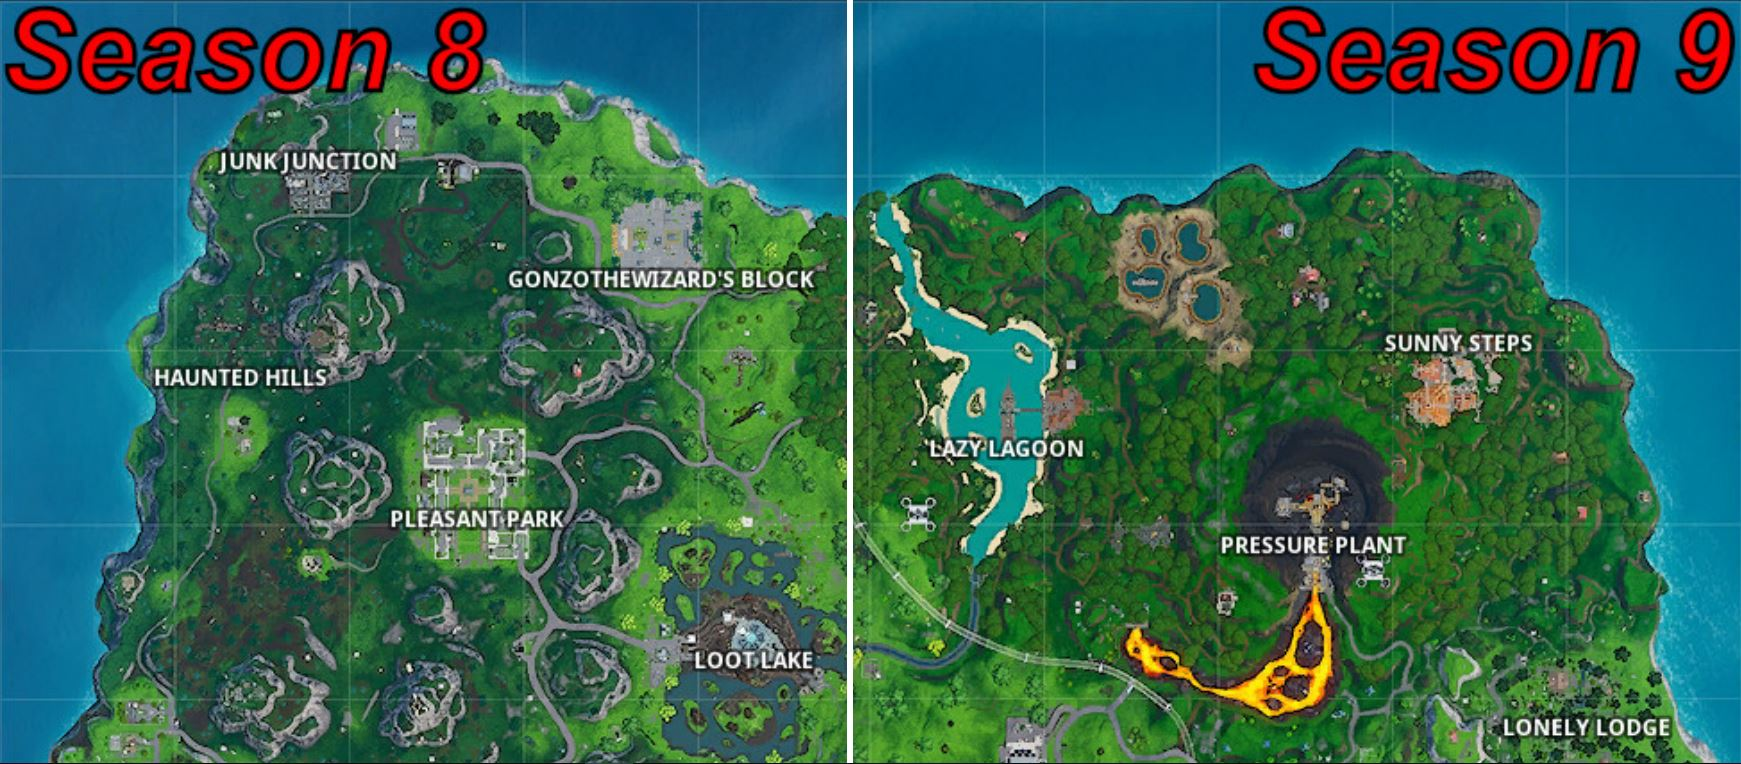 Fortntie Map – View historical maps of fortnite and see the world evolve season by season.